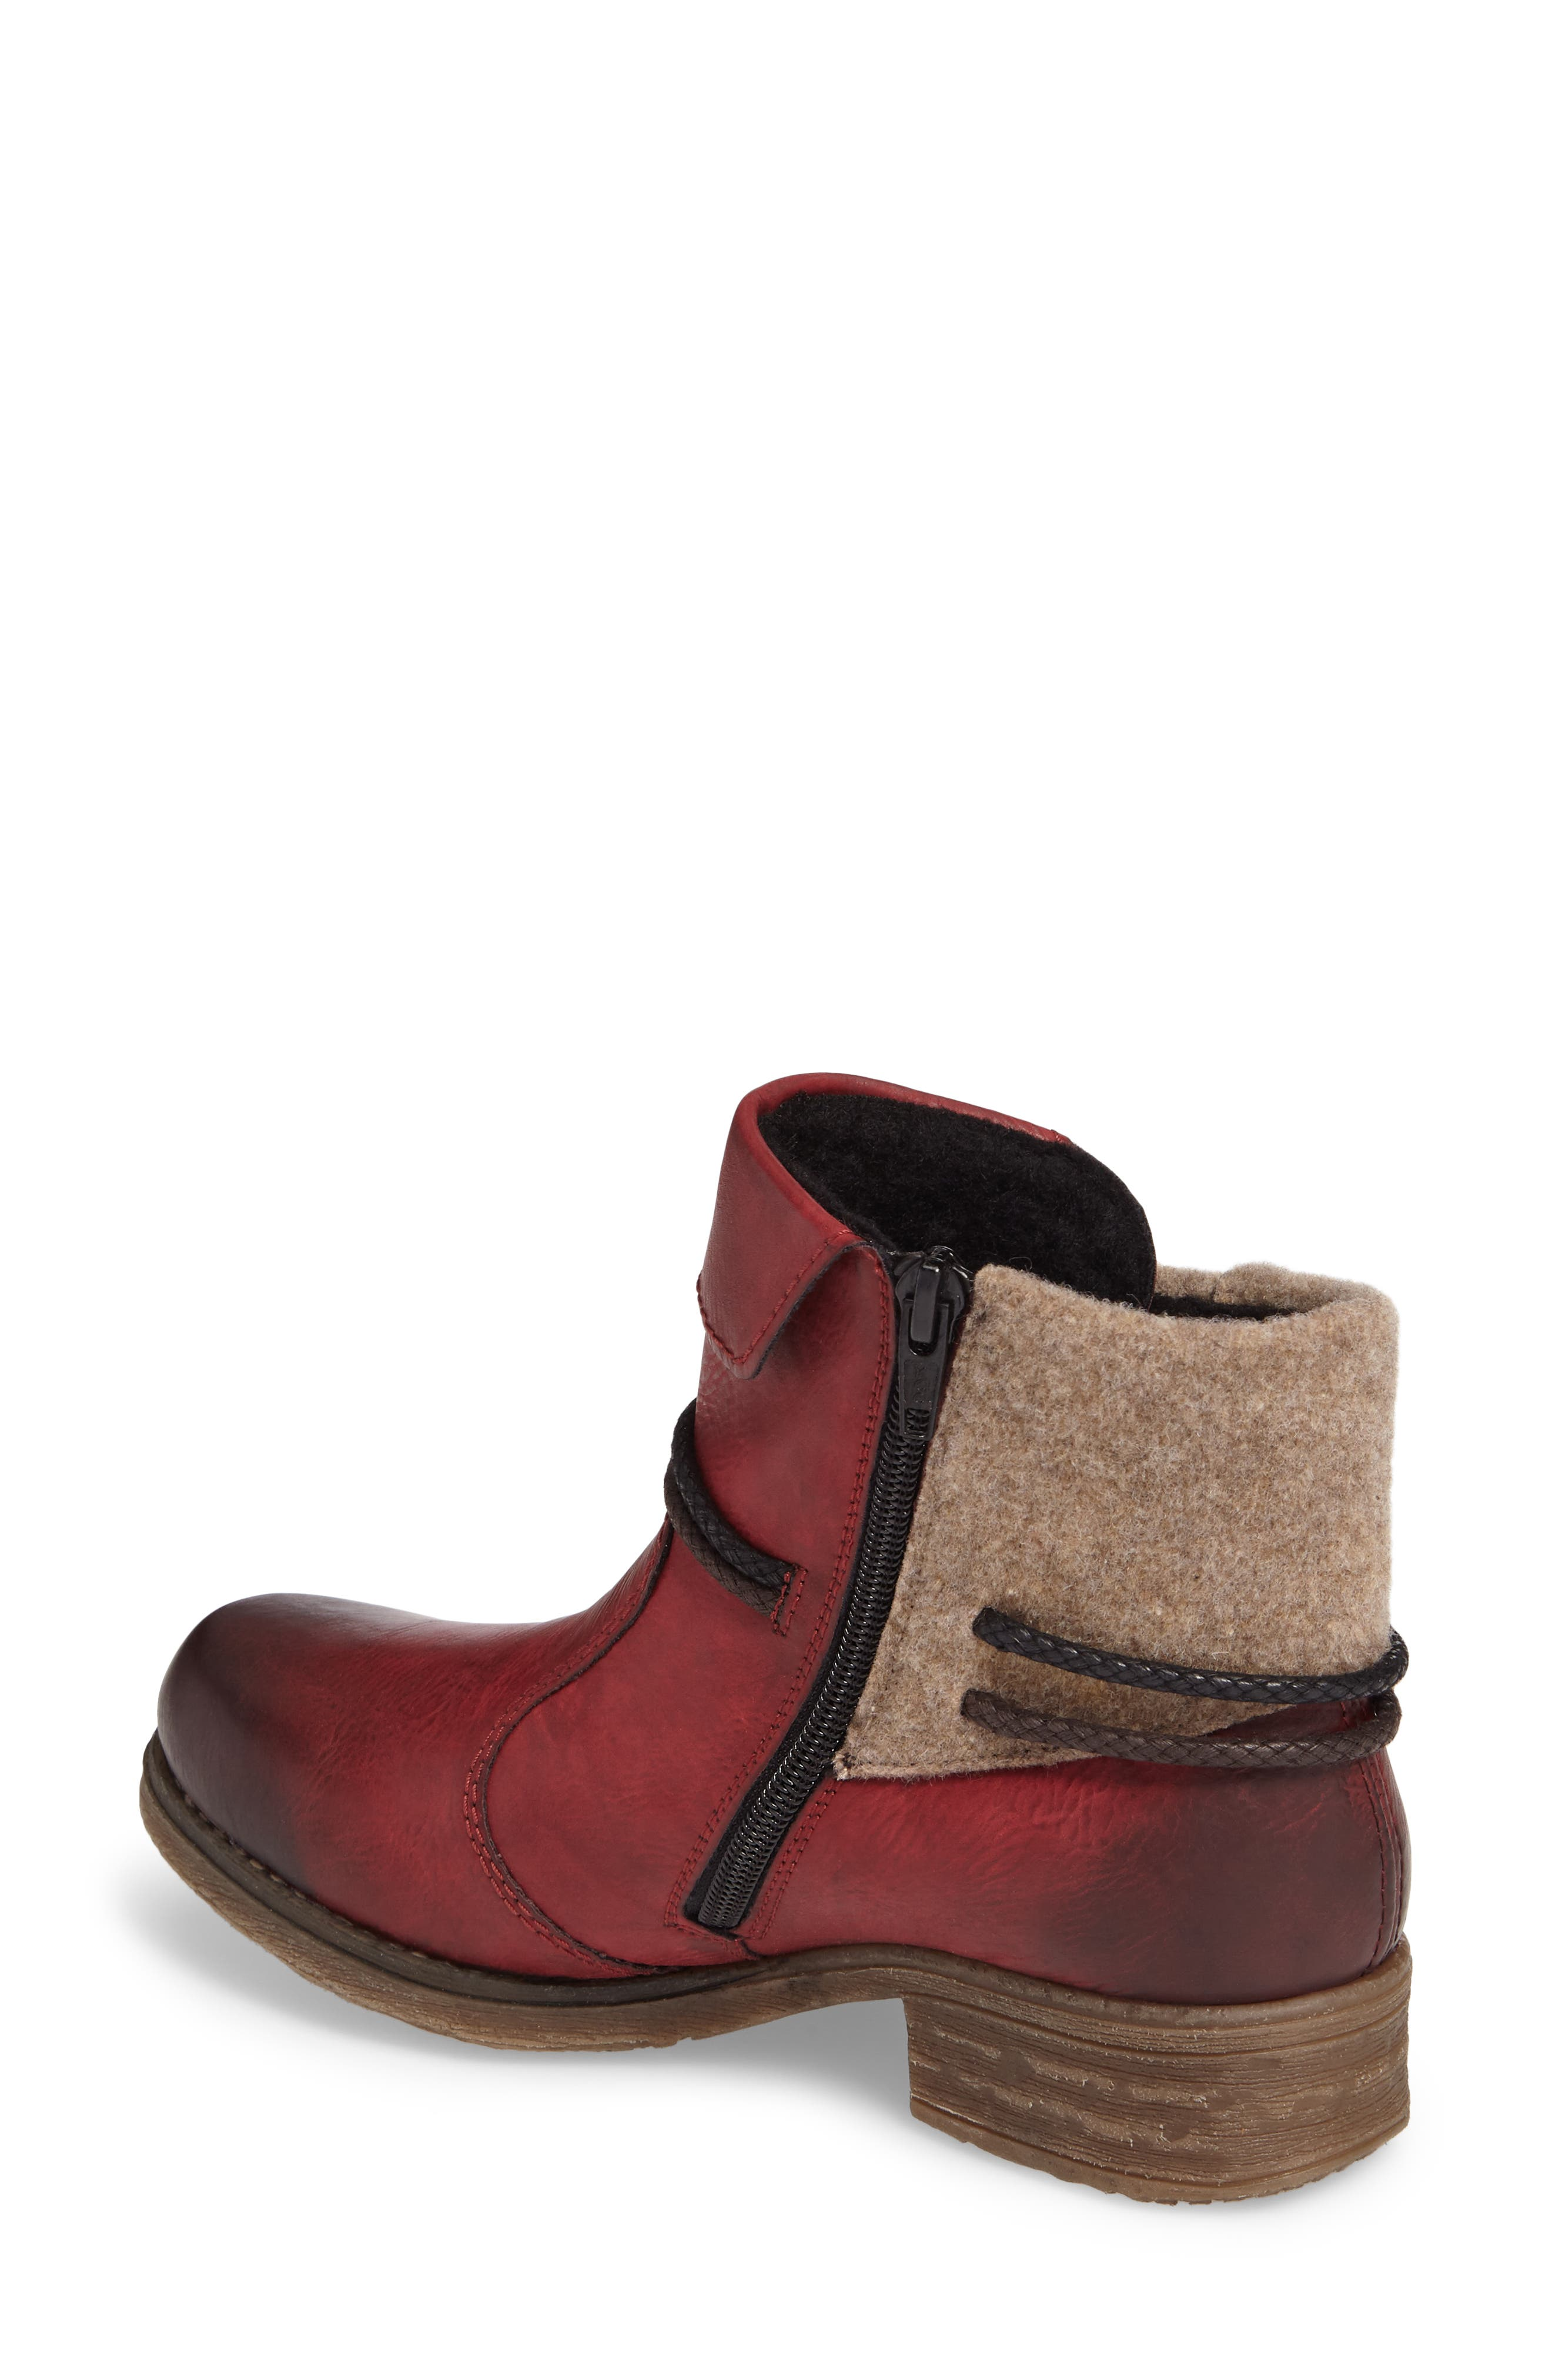 'Fee 93' Cuffed Shaft Bootie,                             Alternate thumbnail 2, color,                             Wine Faux Leather